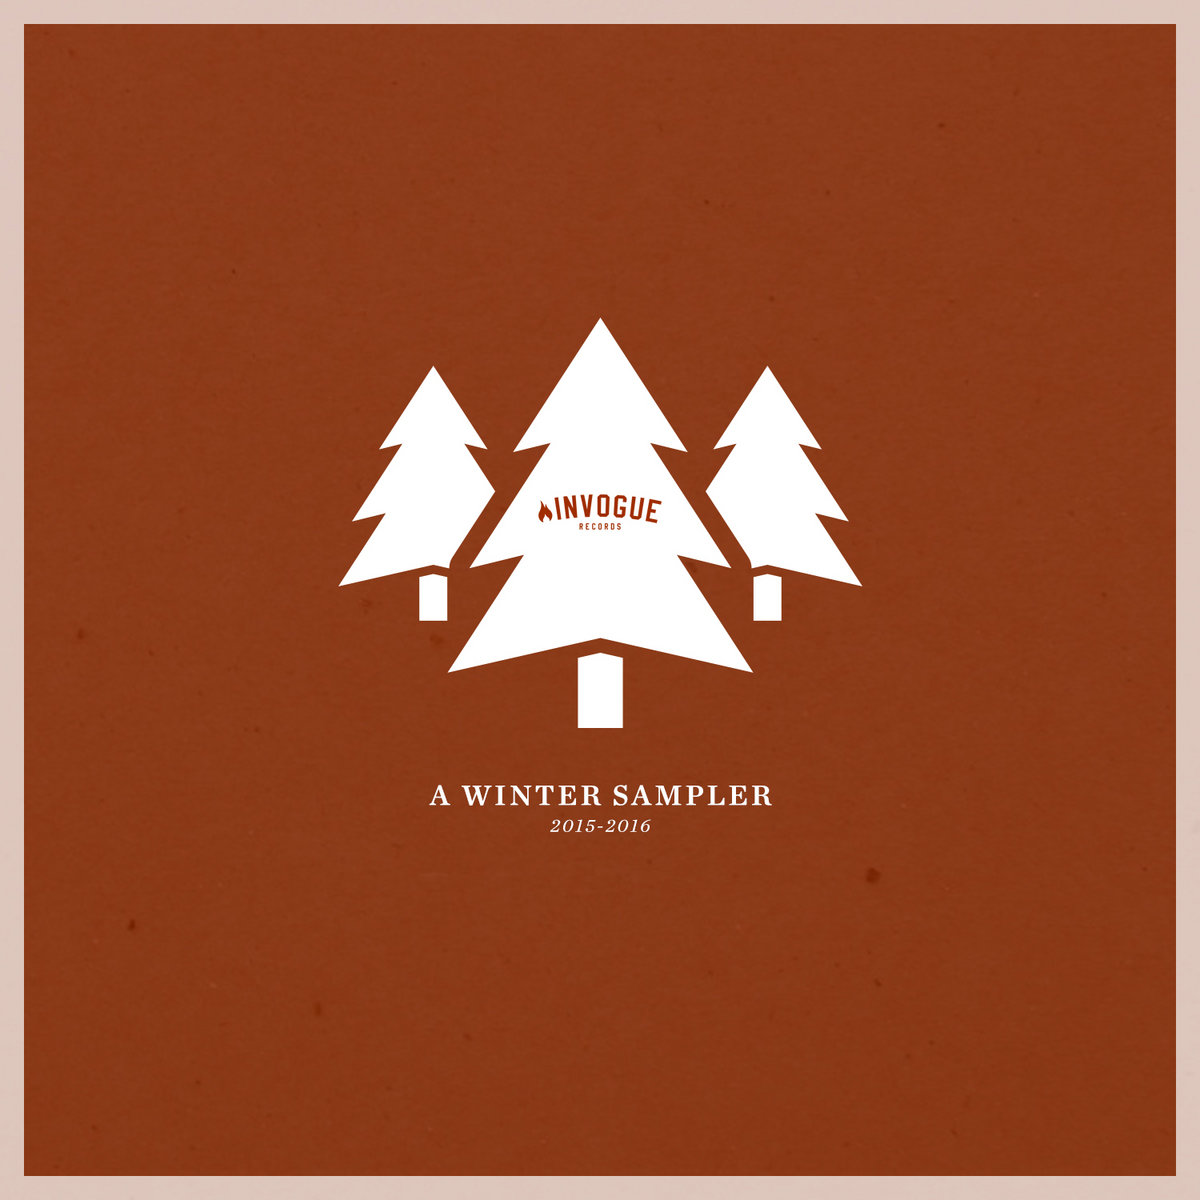 VA - InVogue Records: A Winter Sampler 2015-16 (2015)